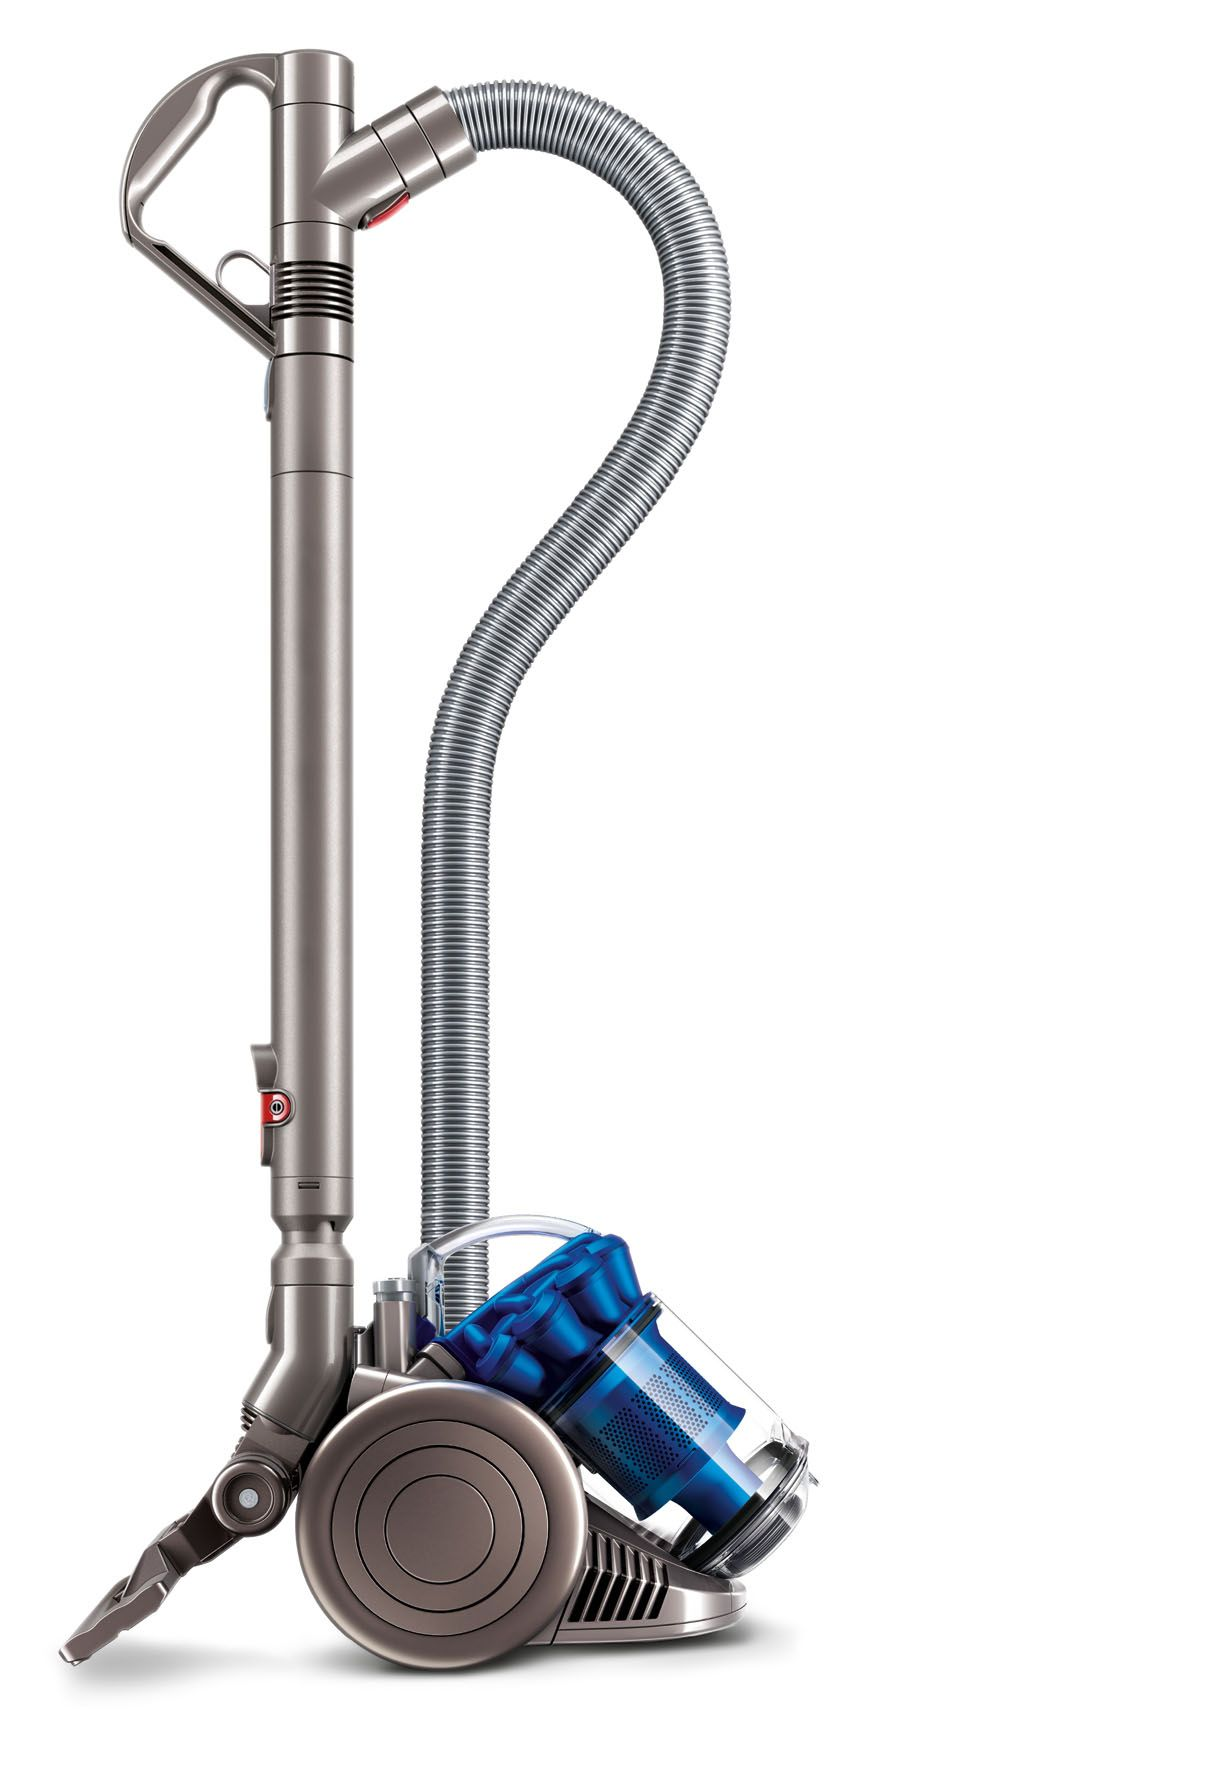 buy cheap dyson cylinder vacuum cleaner compare vacuum cleaners prices for best uk deals. Black Bedroom Furniture Sets. Home Design Ideas